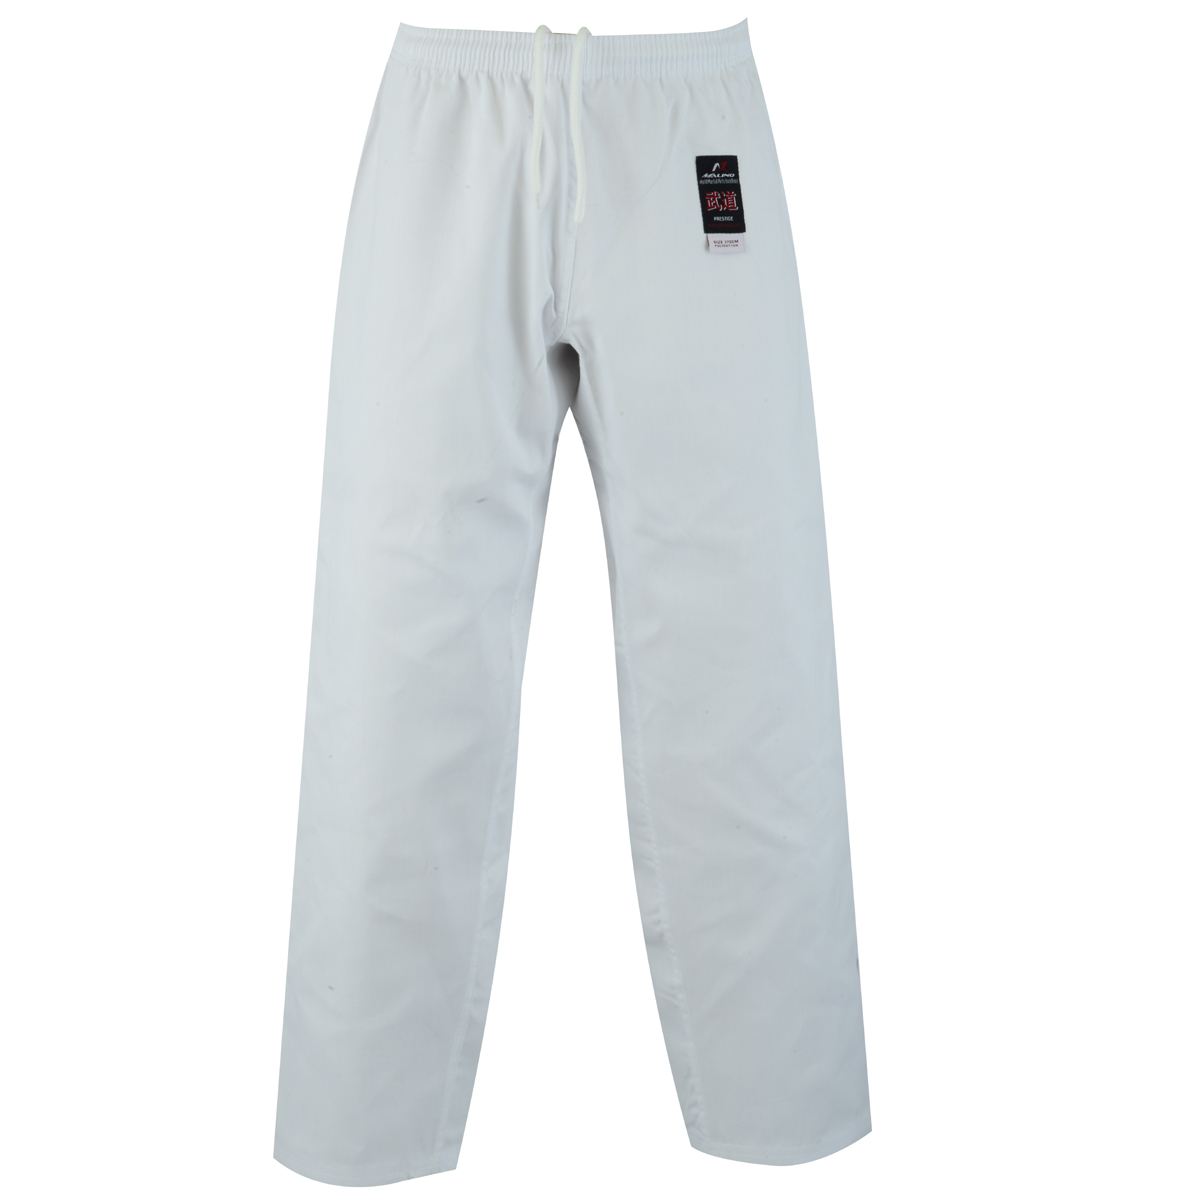 Malino Adult Student Karate Trousers PC White - 7oz